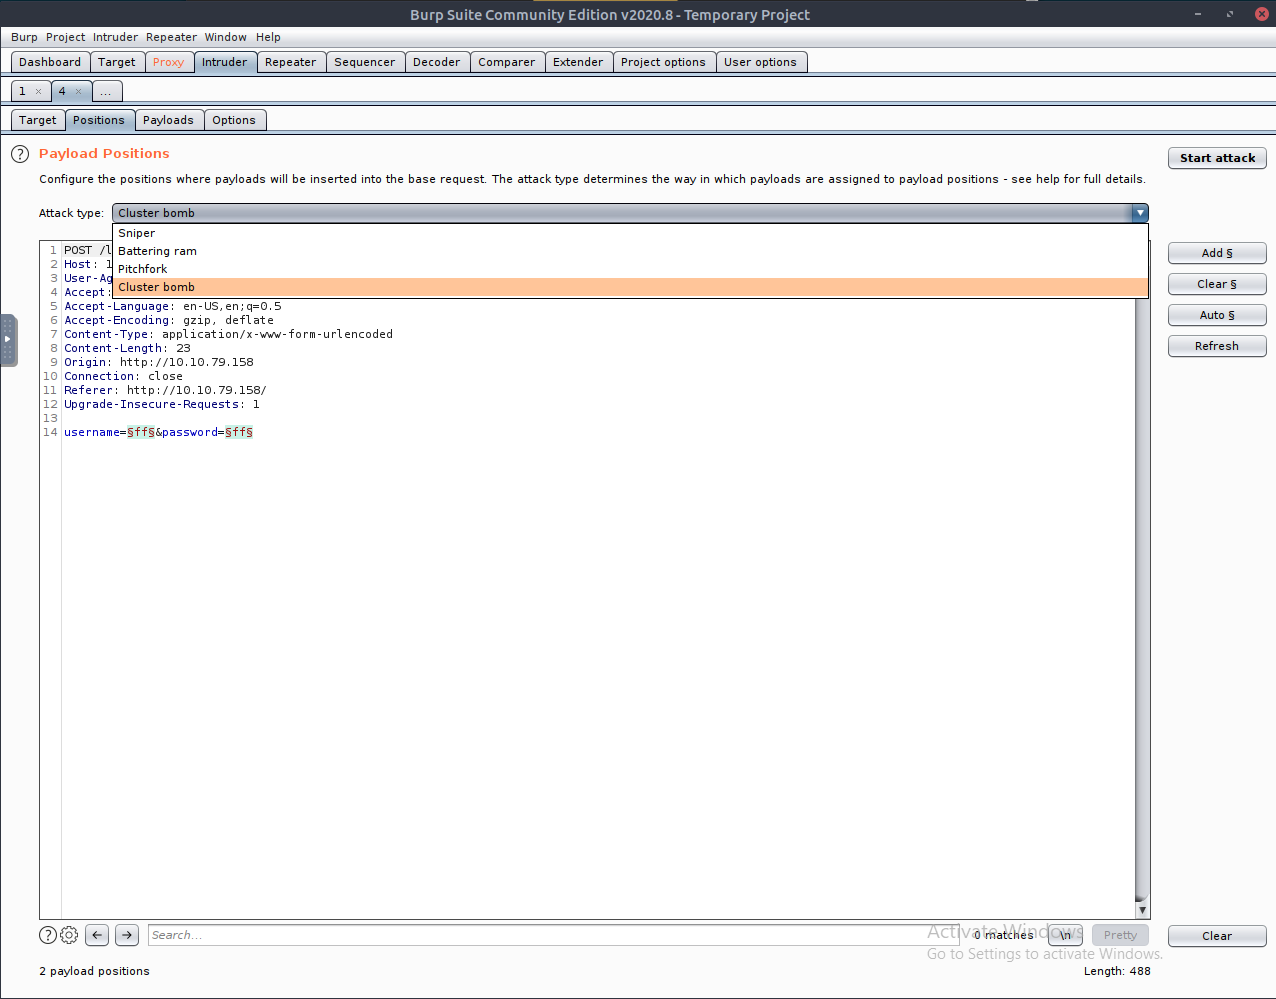 Intruder tab with payload request, highlighting Cluster bomb option in Attack type dropdown